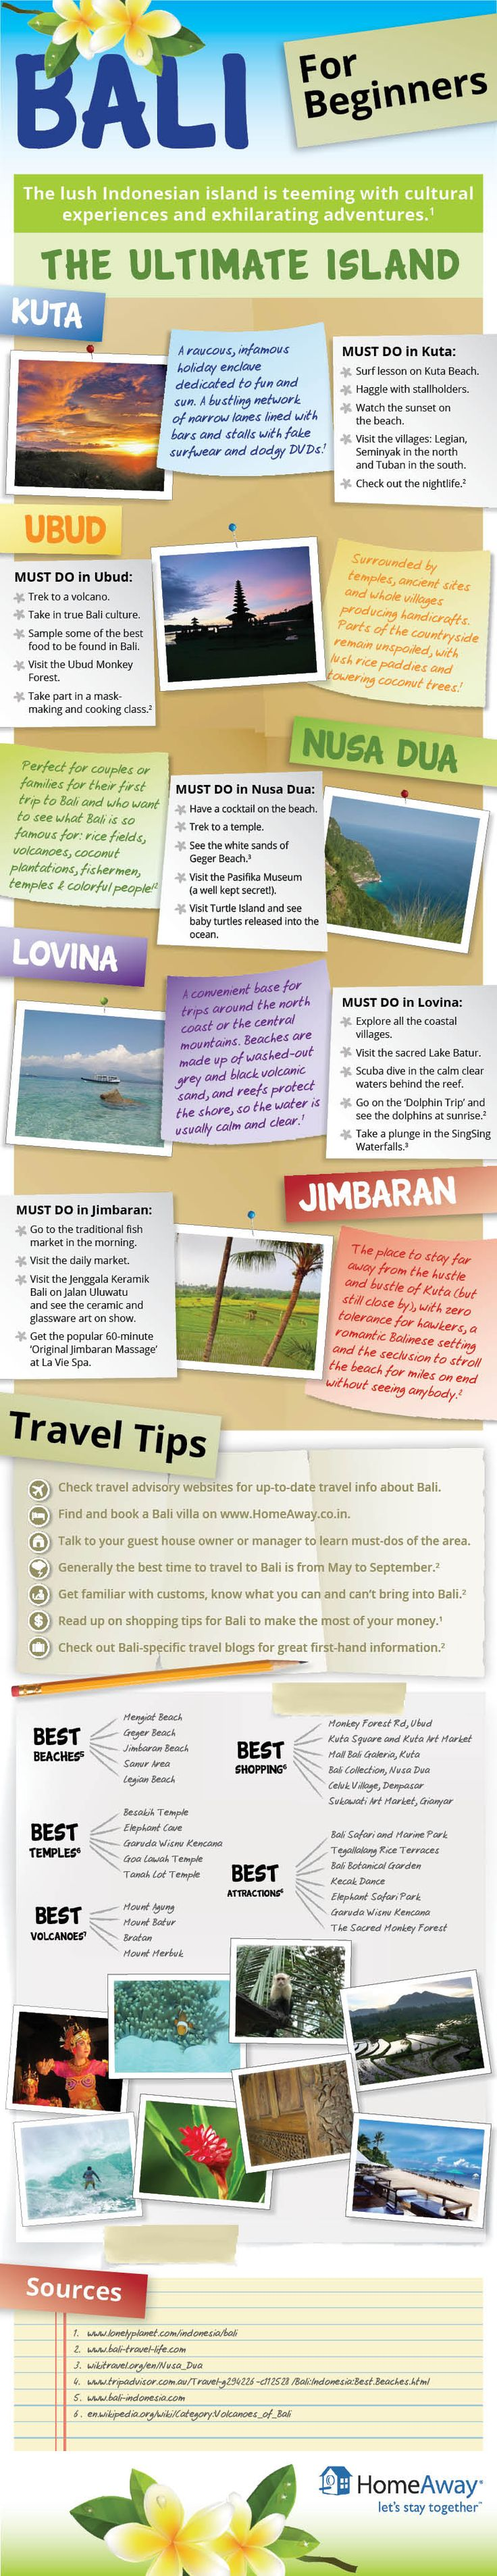 Bali for beginners